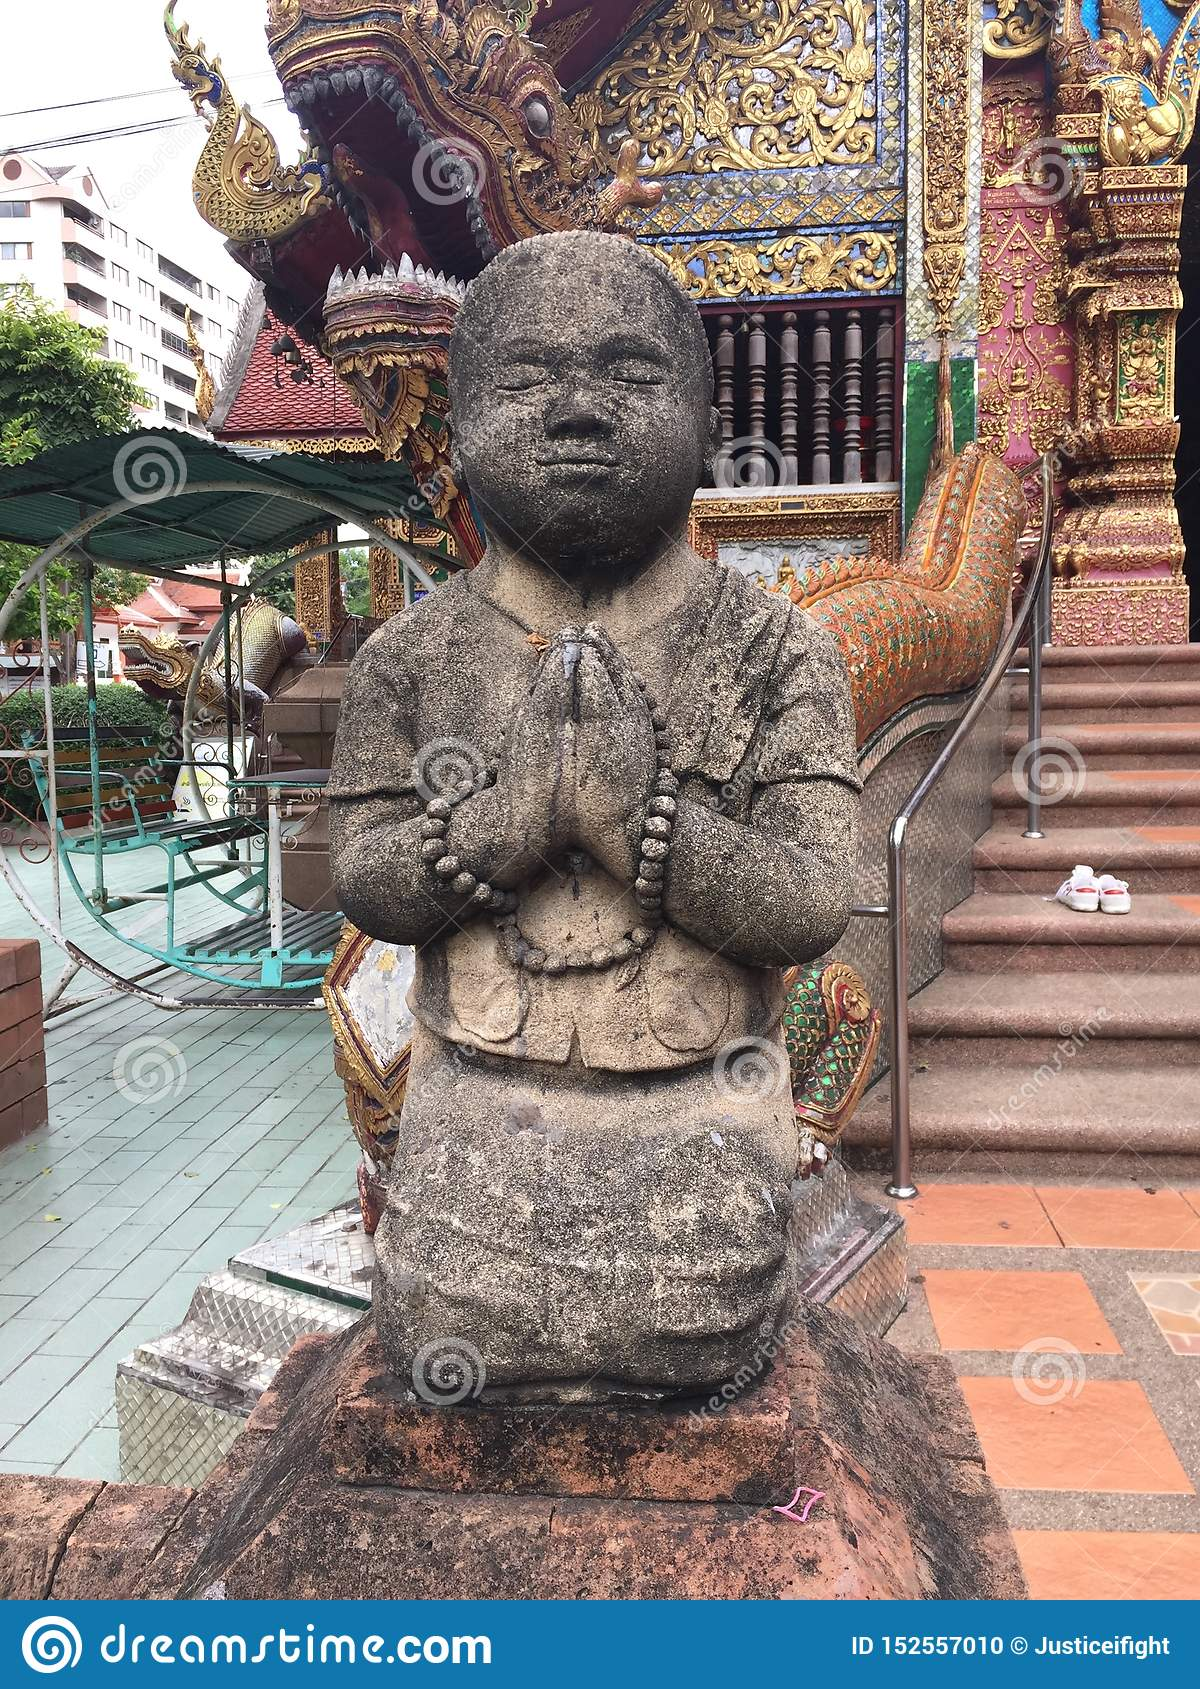 Little Monk Sculpture in Chiangmai Temple